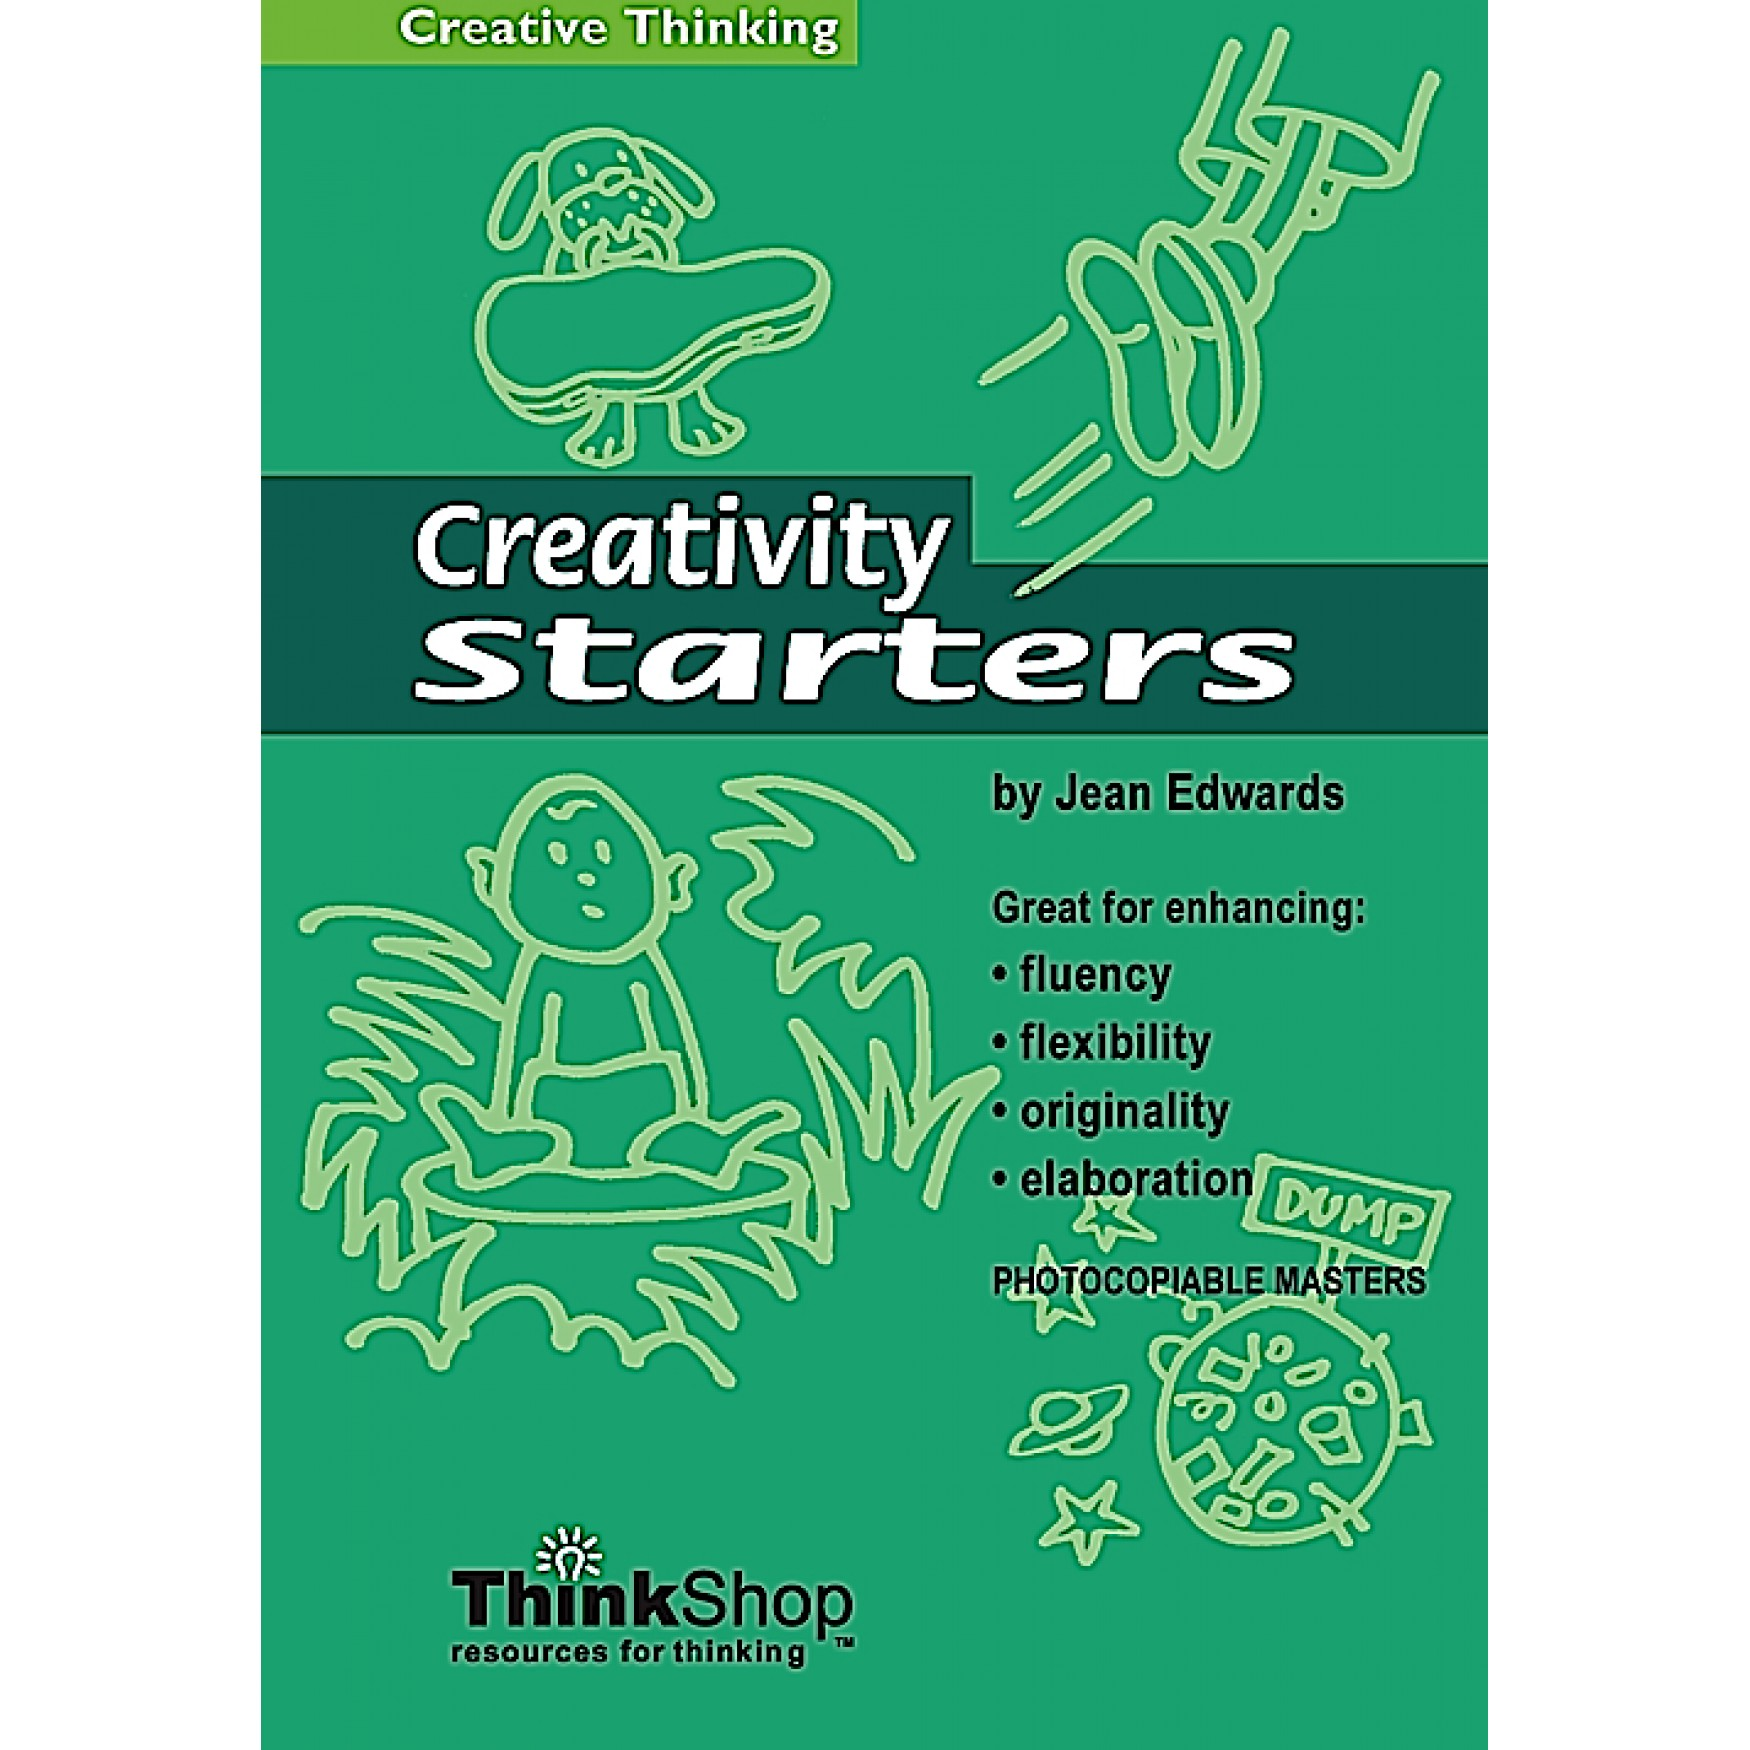 Creativity Starters - e-book